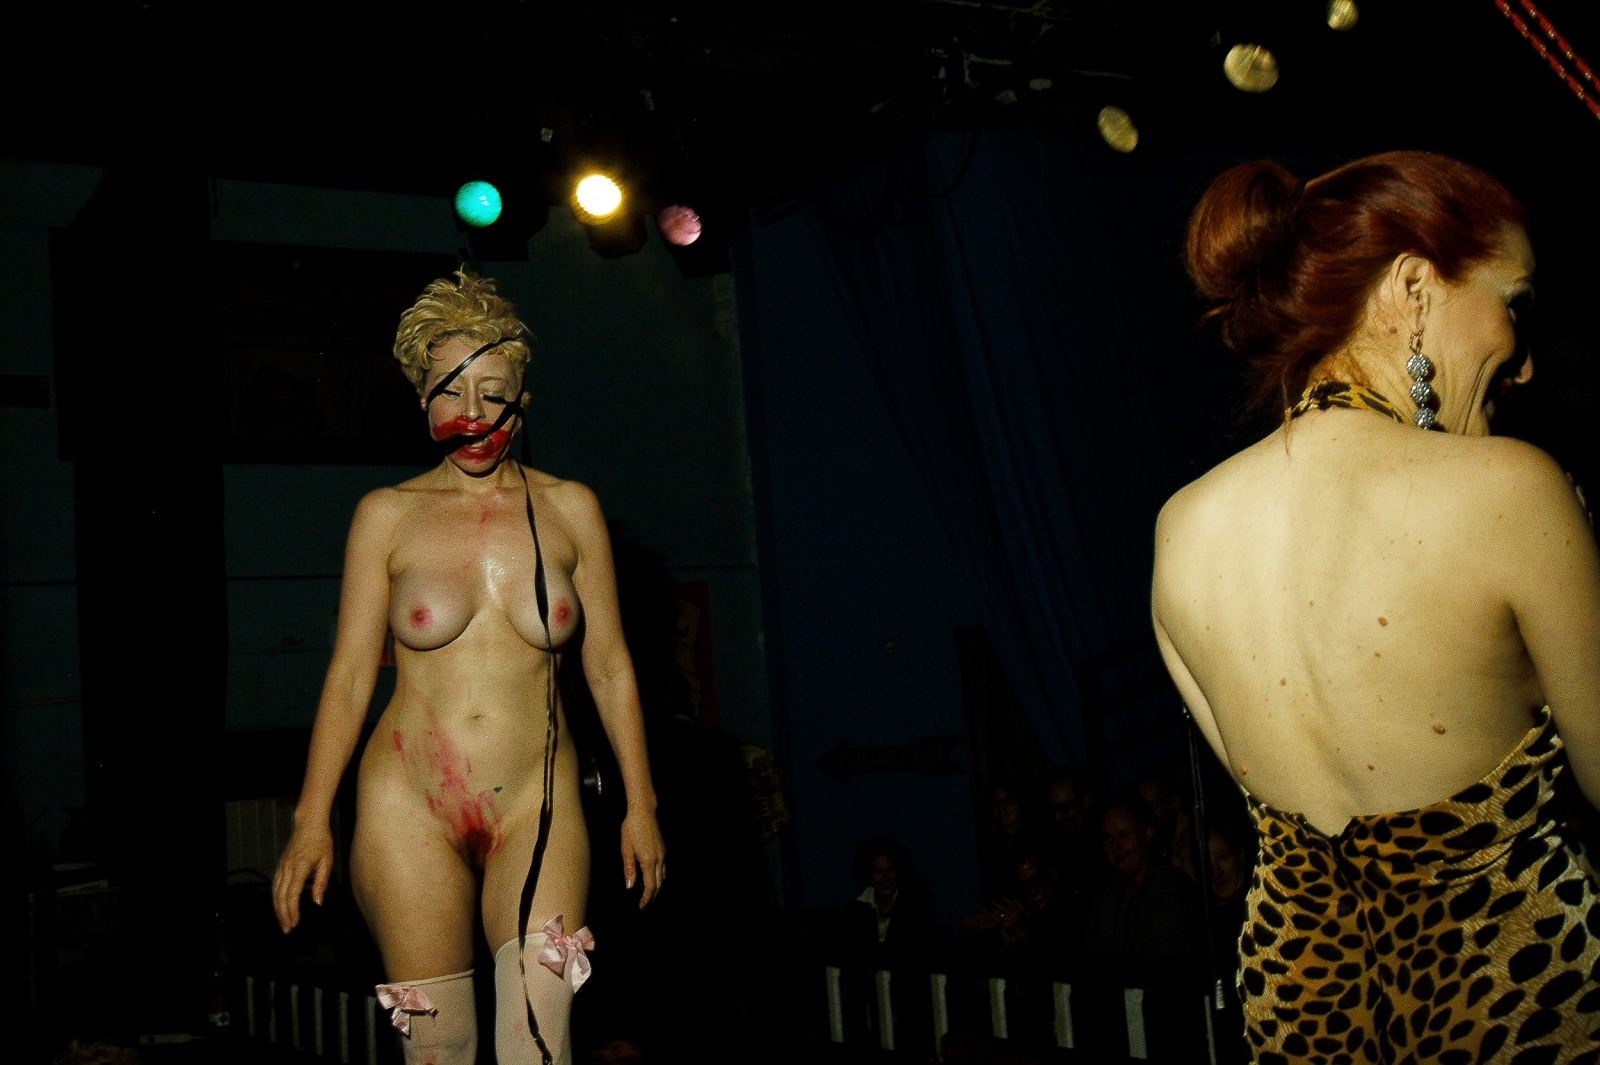 "Neo Burlesque performance artist Bunny Love exits the stage behind hostess Jo ""Boobs"" Weldon after a performance honoring analog technologies. The best Neo-Burlesque performers have gone far beyond traditional striptease deep into the realm of avant-garde performance art. After the performance, Love and Boobs took part in a panel discussion about burlesque's historical associations with sideshows."